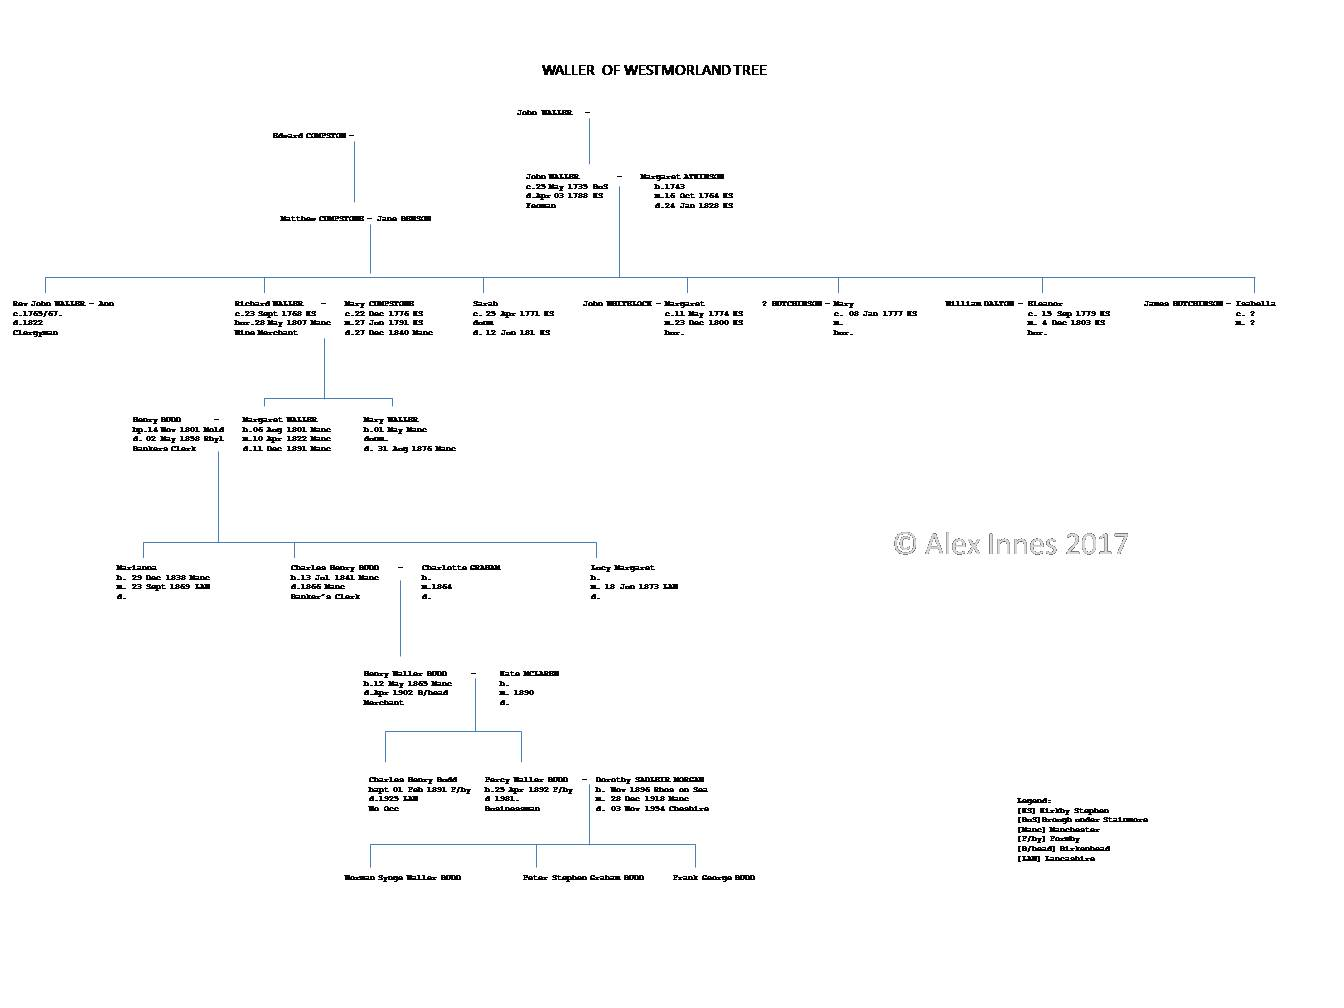 Above is the family tree for a branch of the WALLER family in Westmorland, England.